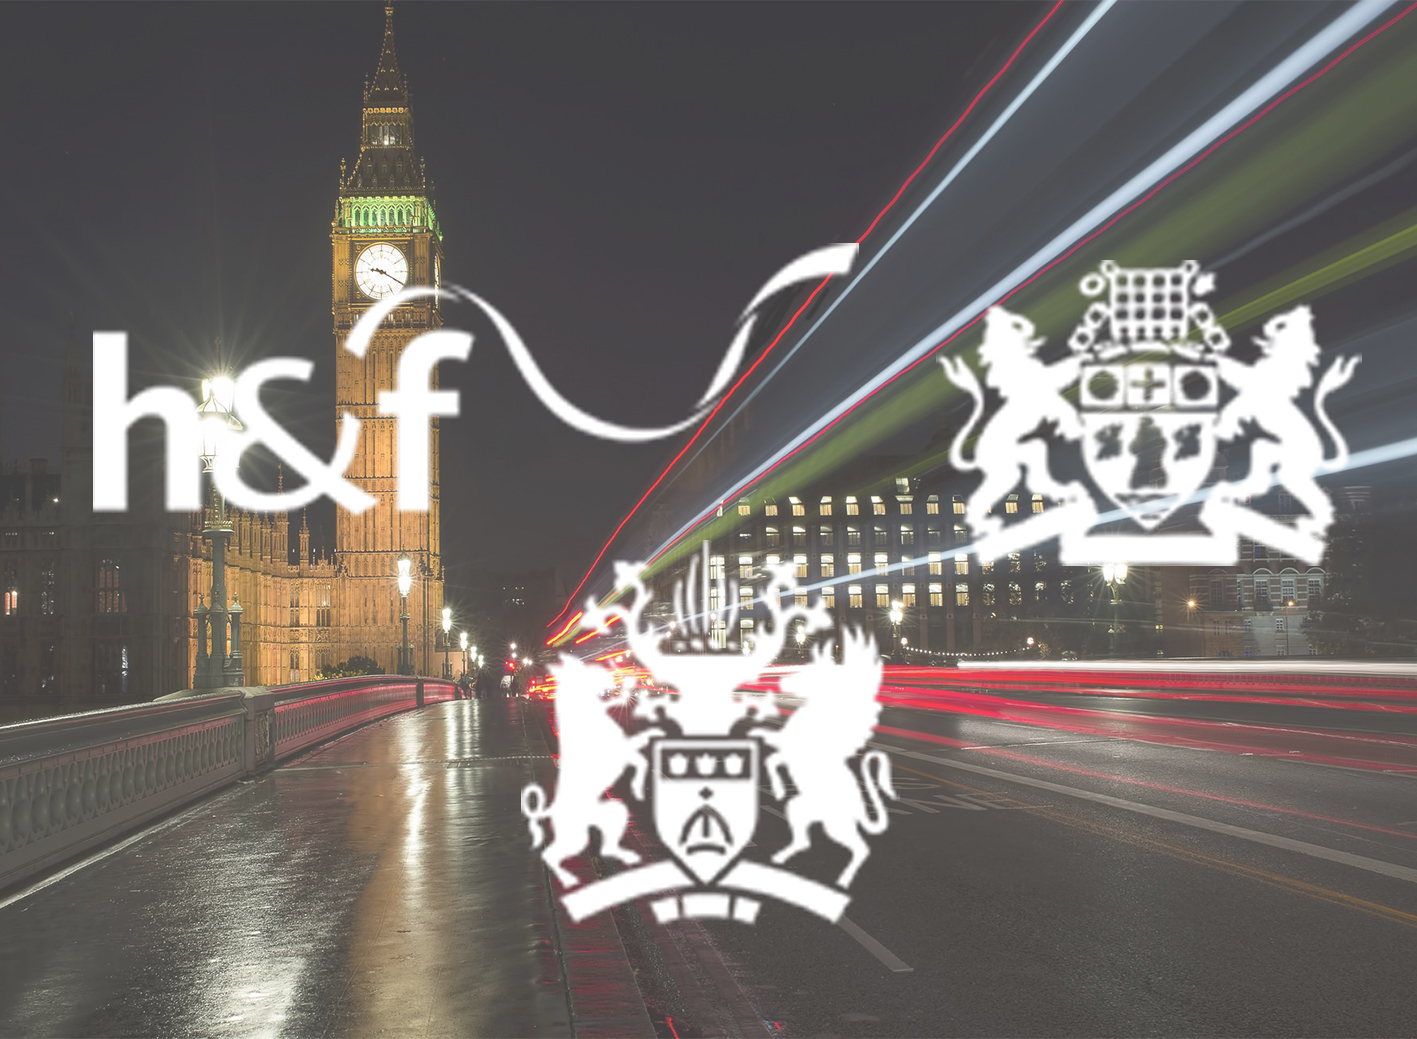 London's Shared Service Alliance of Hammersmith & Fulham, Kensington and Chelsea, and City of Westminster Appoints Prepaid Financial Services (PFS) to Manage its Direct Payments Prepaid Card Programme